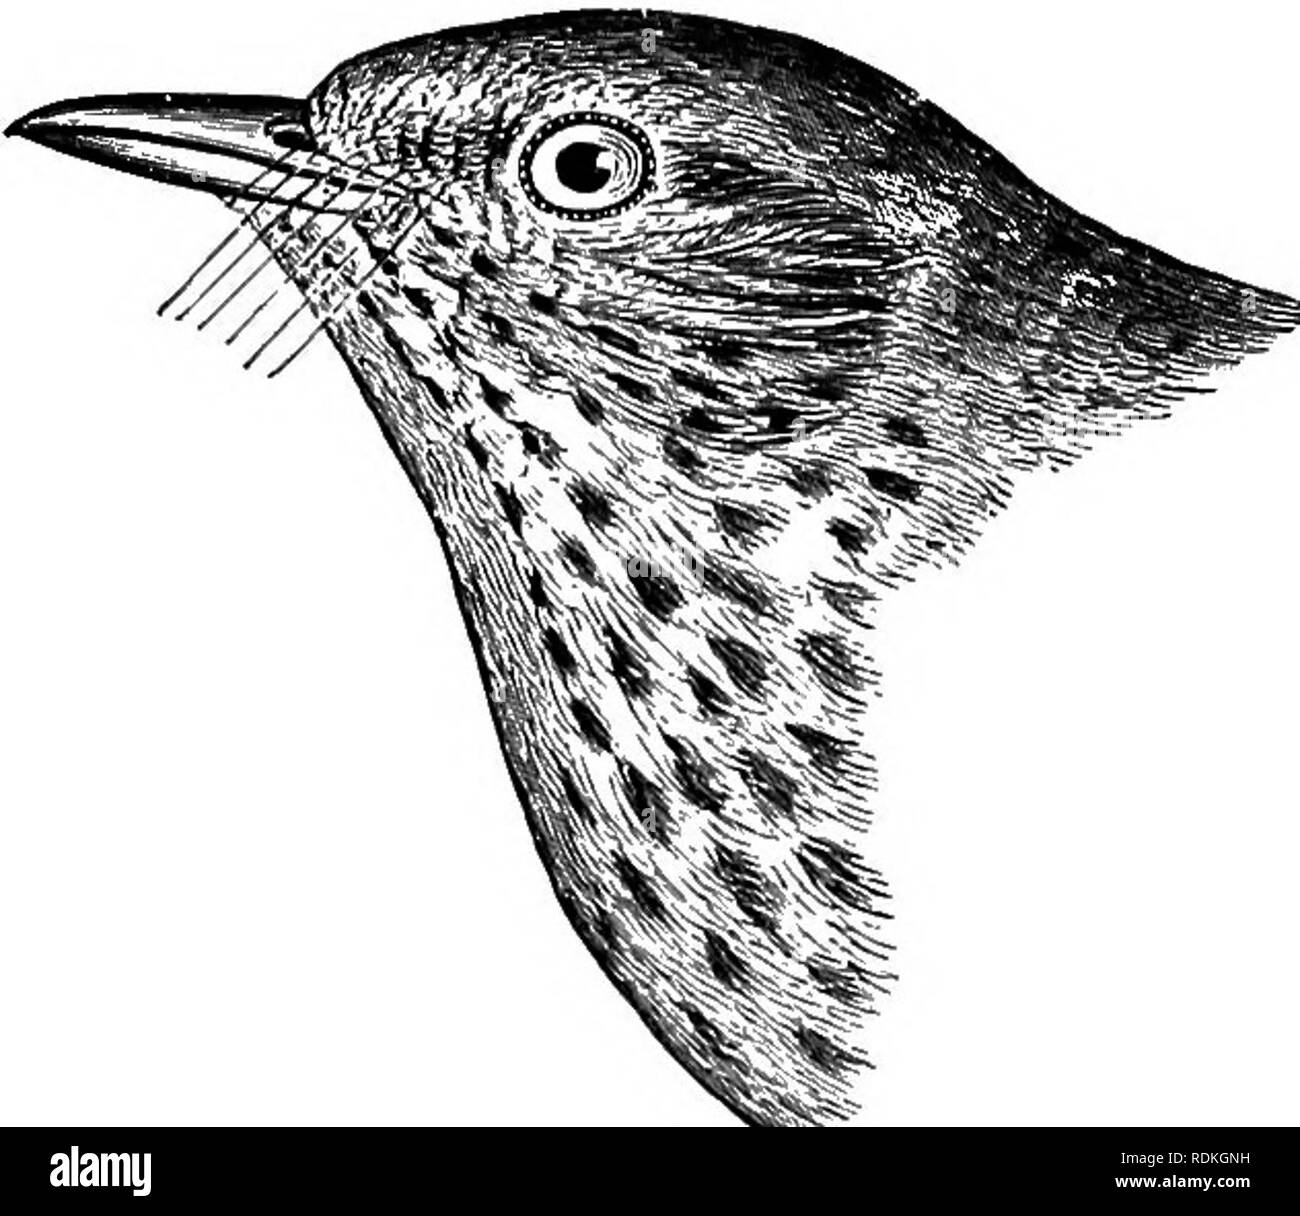 . The birds of Illinois and Wisconsin. Birds; Birds. Jan., 1909. Birds of Illinois and Wisconsin—Cory. 711. Olive-backed Thrush. (Birds N. E. 111., 1876, p. 93), but this does not necessarily indicate breeding. Injured or non-breeding birds often re- main during the summer far south of their usual habitat. It is not known to breed in northern Wisconsin, but it is not unlikely that it does so. The song is charming but not as fine or as varied as that of the Wood Thrush, which it somewhat resembles. Alma's Thrush, Hylocichla ustulata almcs Bishop, recorded from Wisconsin (Kumlien and Hollister,  Stock Photo